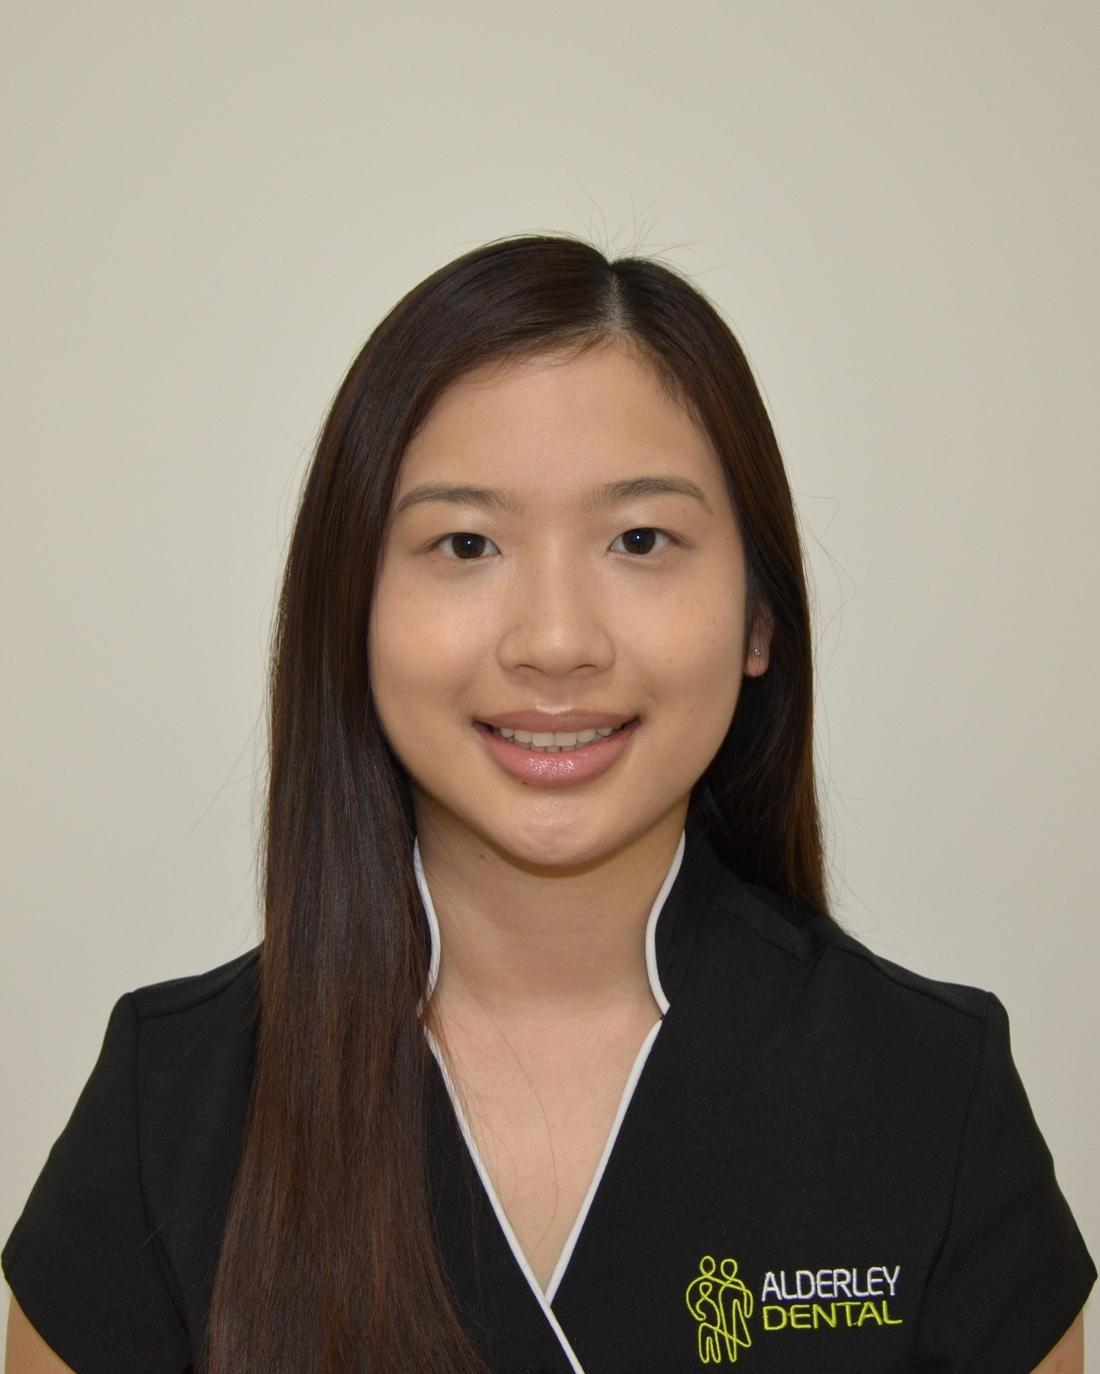 Dr Laura Truong | Dentist in Alderley QLD